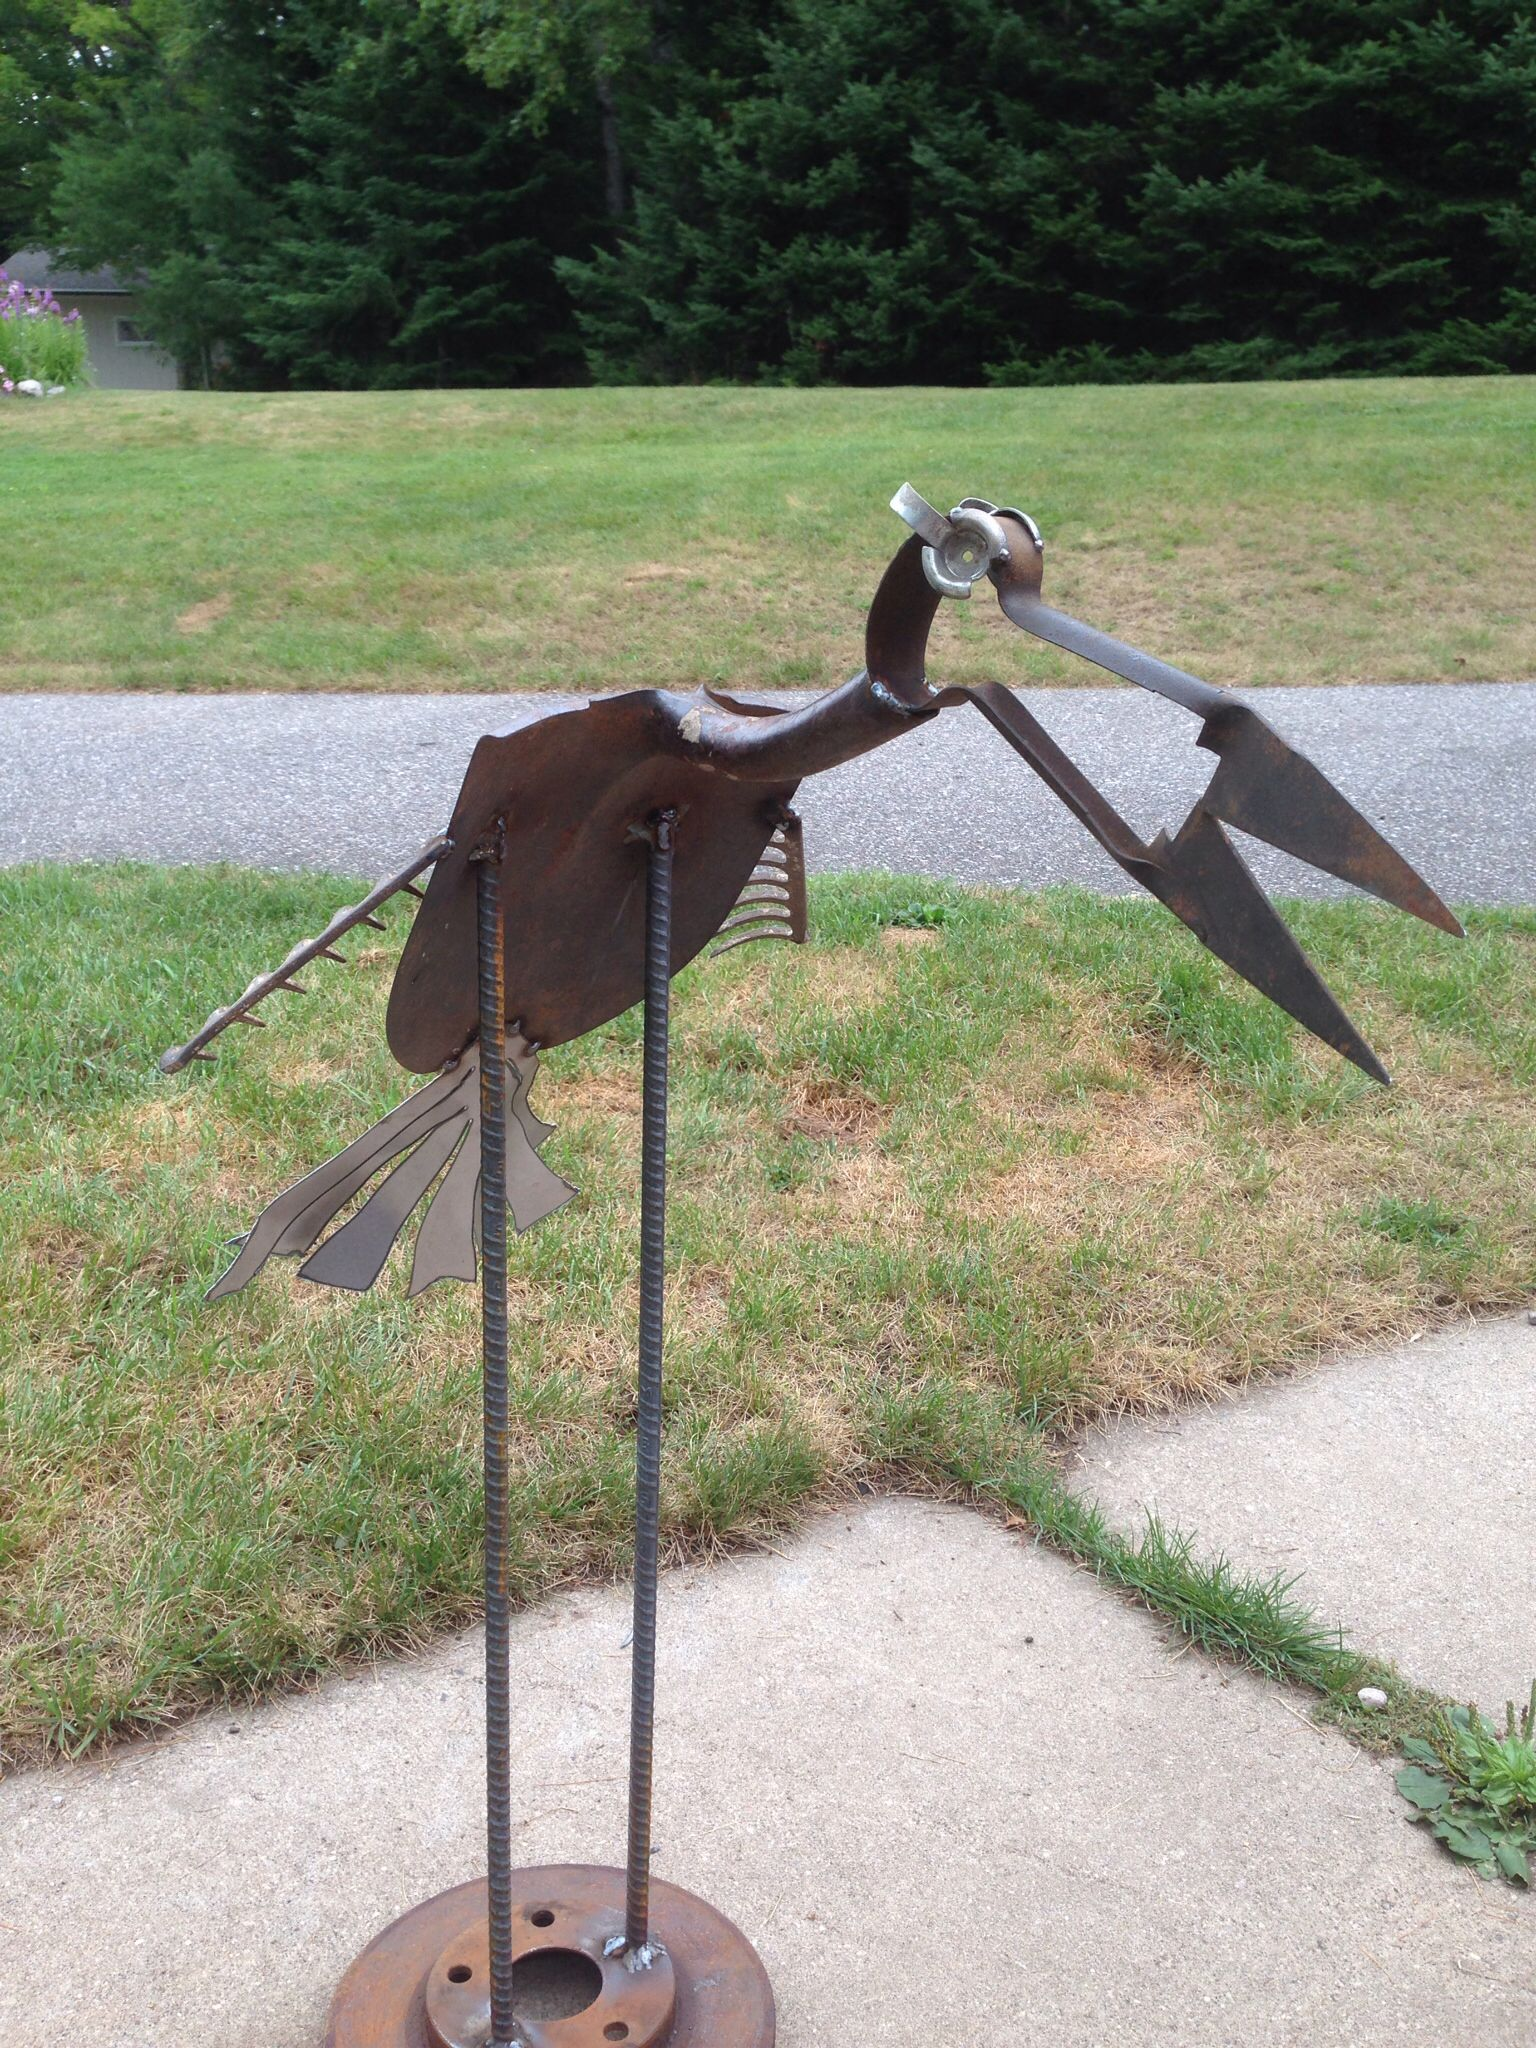 The Bird Is Made With A Shovel, Some Kind Of